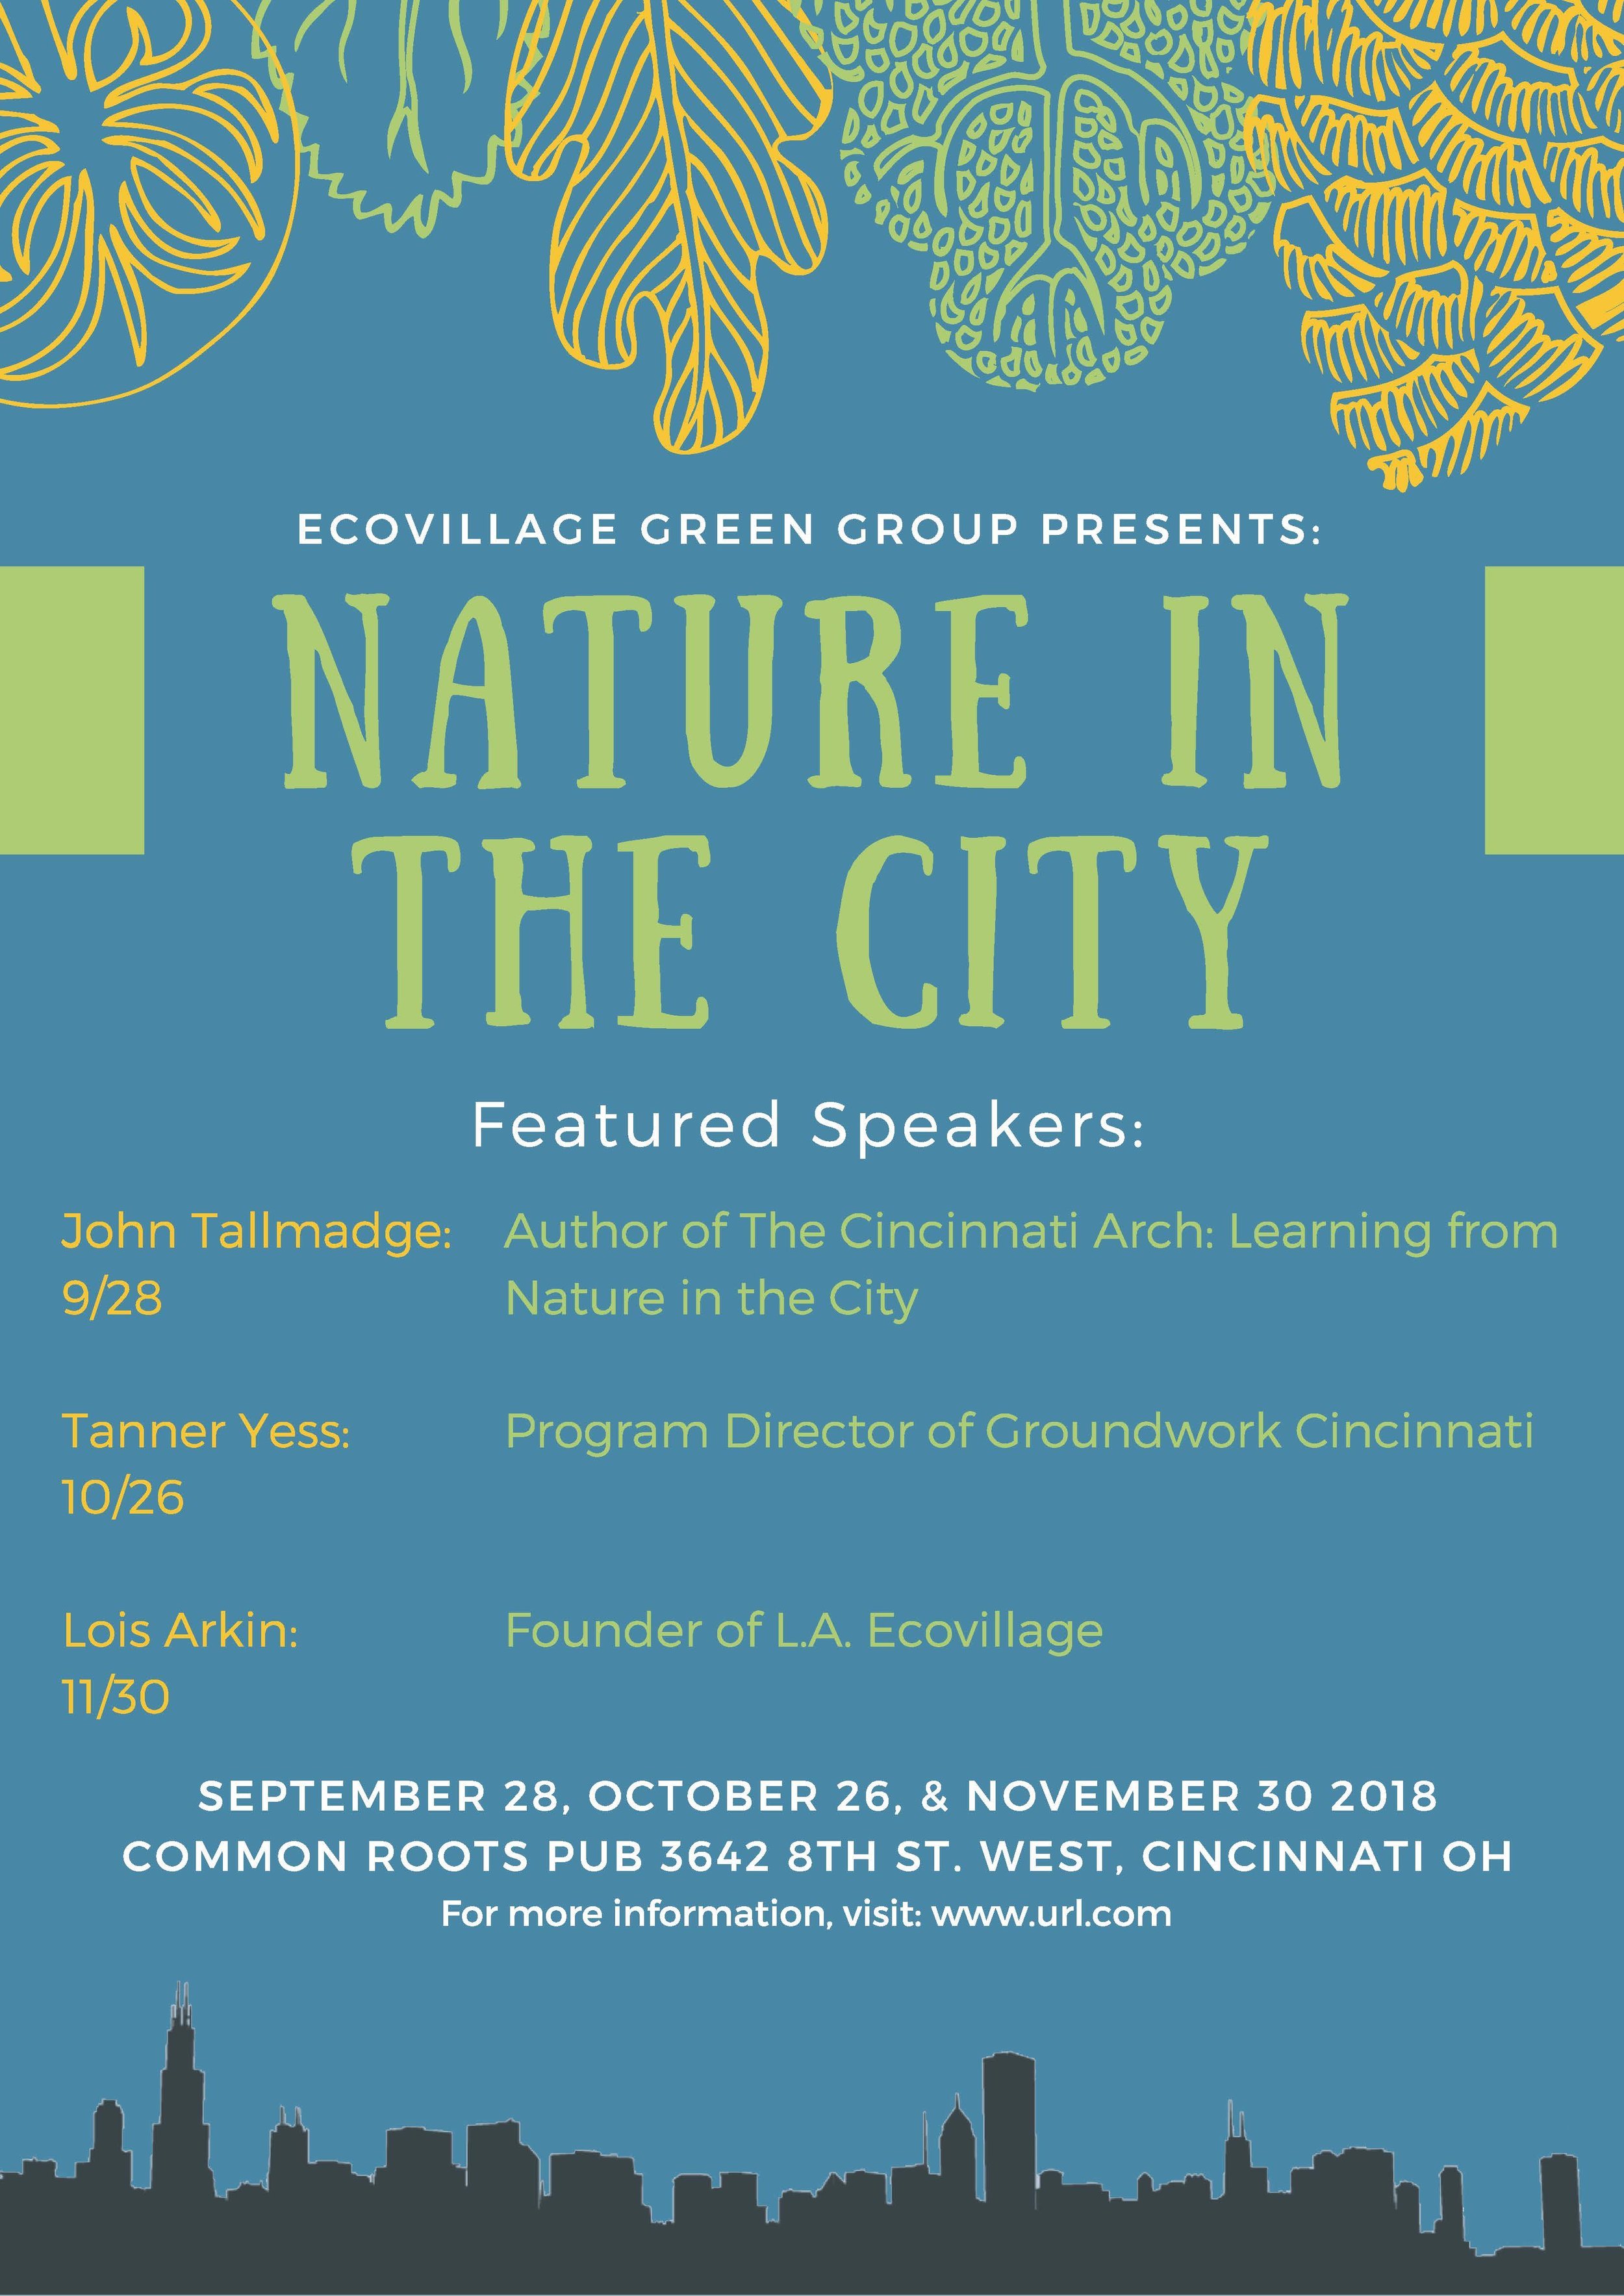 Nature in the city flyer black (2).jpg